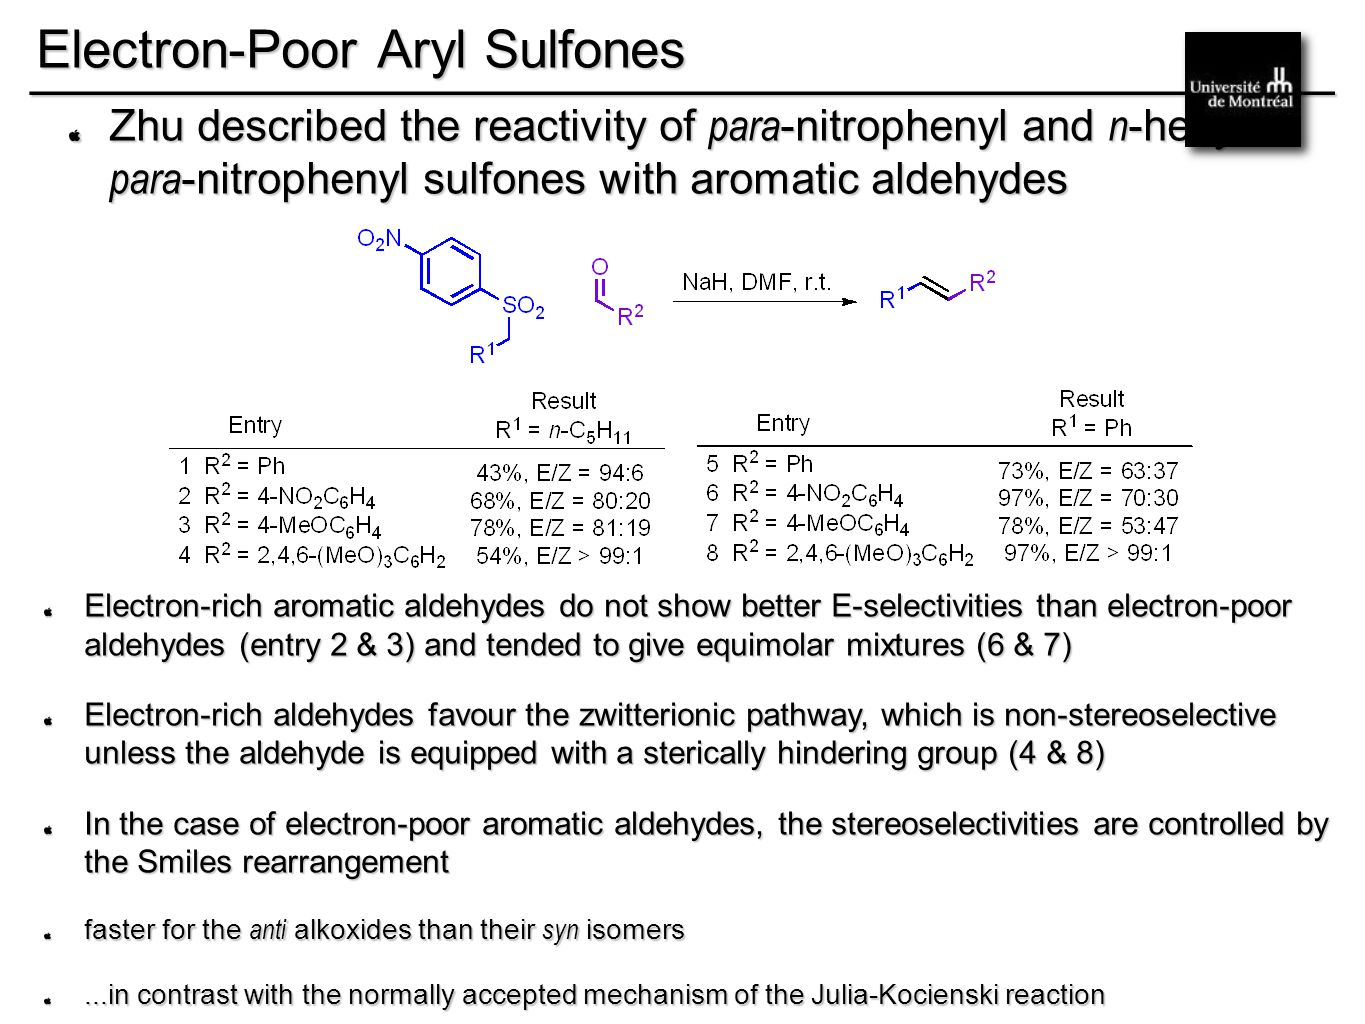 __________________________________________ Electron-Poor Aryl Sulfones Zhu described the reactivity of para -nitrophenyl and n -hexyl- para -nitrophenyl sulfones with aromatic aldehydes Electron-rich aromatic aldehydes do not show better E-selectivities than electron-poor aldehydes (entry 2 & 3) and tended to give equimolar mixtures (6 & 7) Electron-rich aldehydes favour the zwitterionic pathway, which is non-stereoselective unless the aldehyde is equipped with a sterically hindering group (4 & 8) In the case of electron-poor aromatic aldehydes, the stereoselectivities are controlled by the Smiles rearrangement faster for the anti alkoxides than their syn isomers...in contrast with the normally accepted mechanism of the Julia-Kocienski reaction